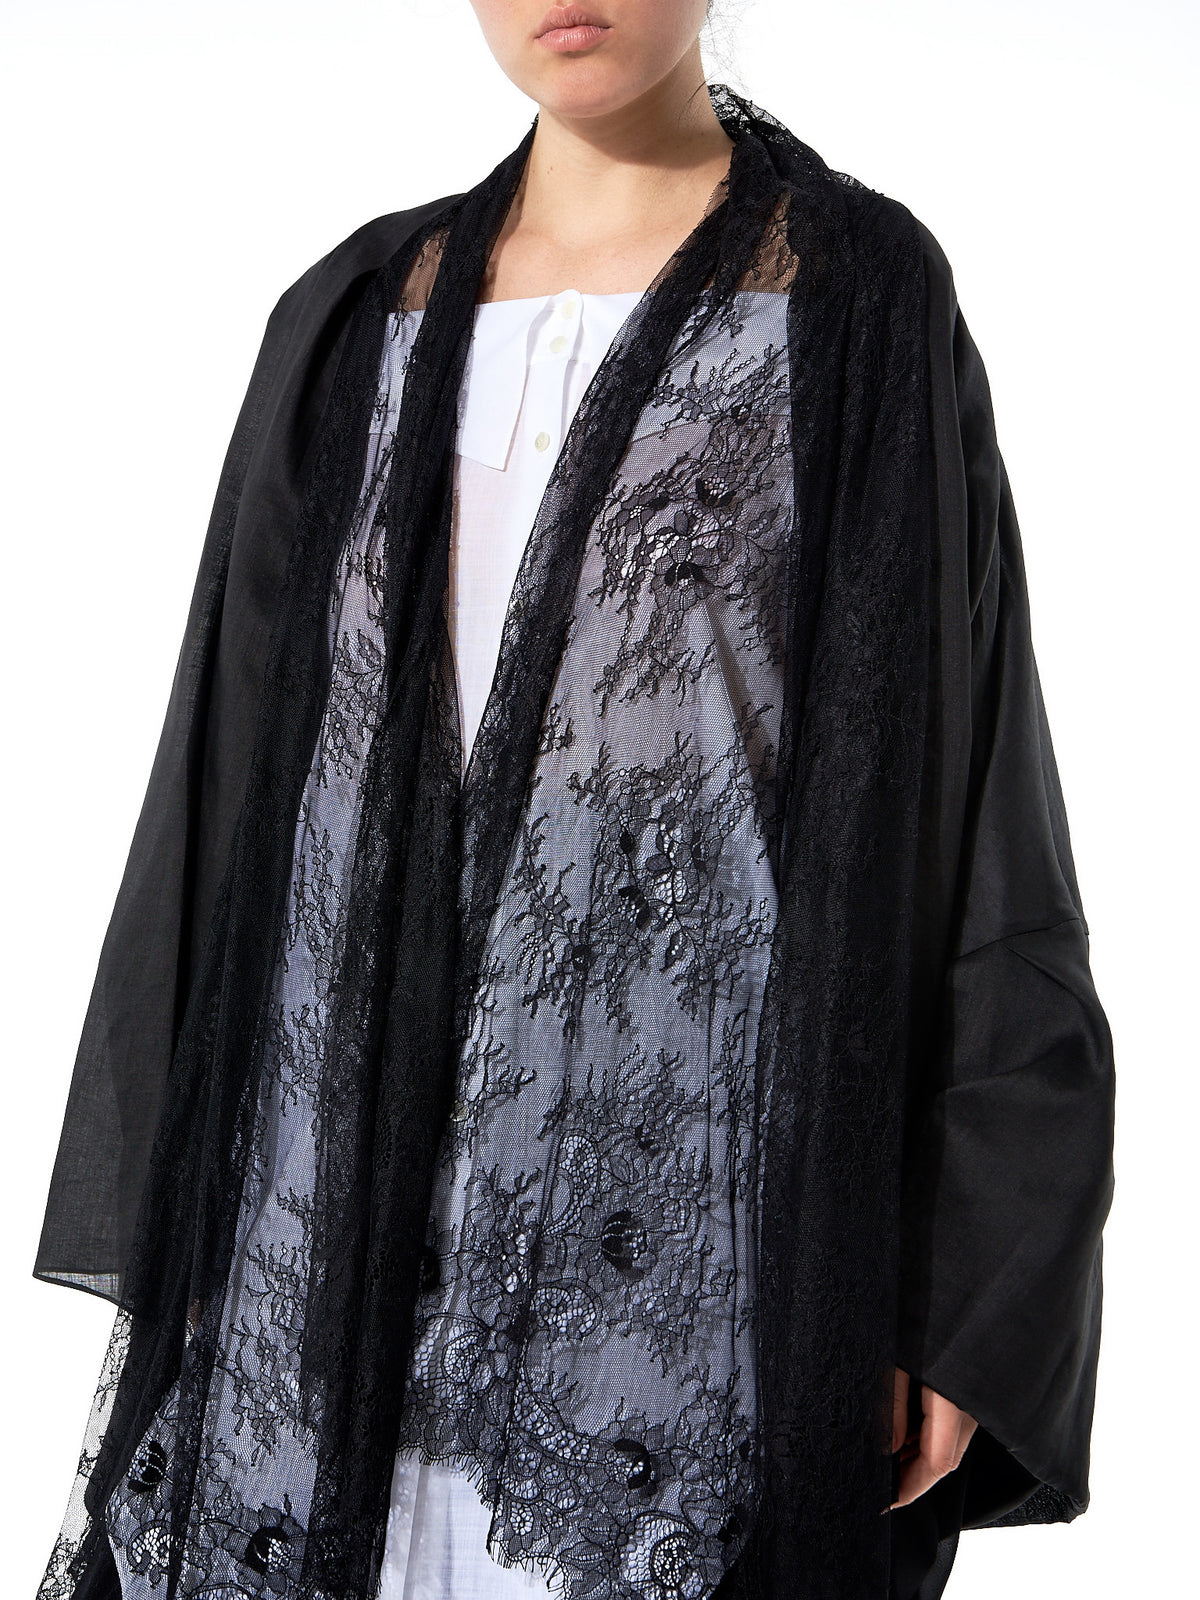 Lace Embroidered Cardigan (GLS-JK11-BLACK) - H. Lorenzo